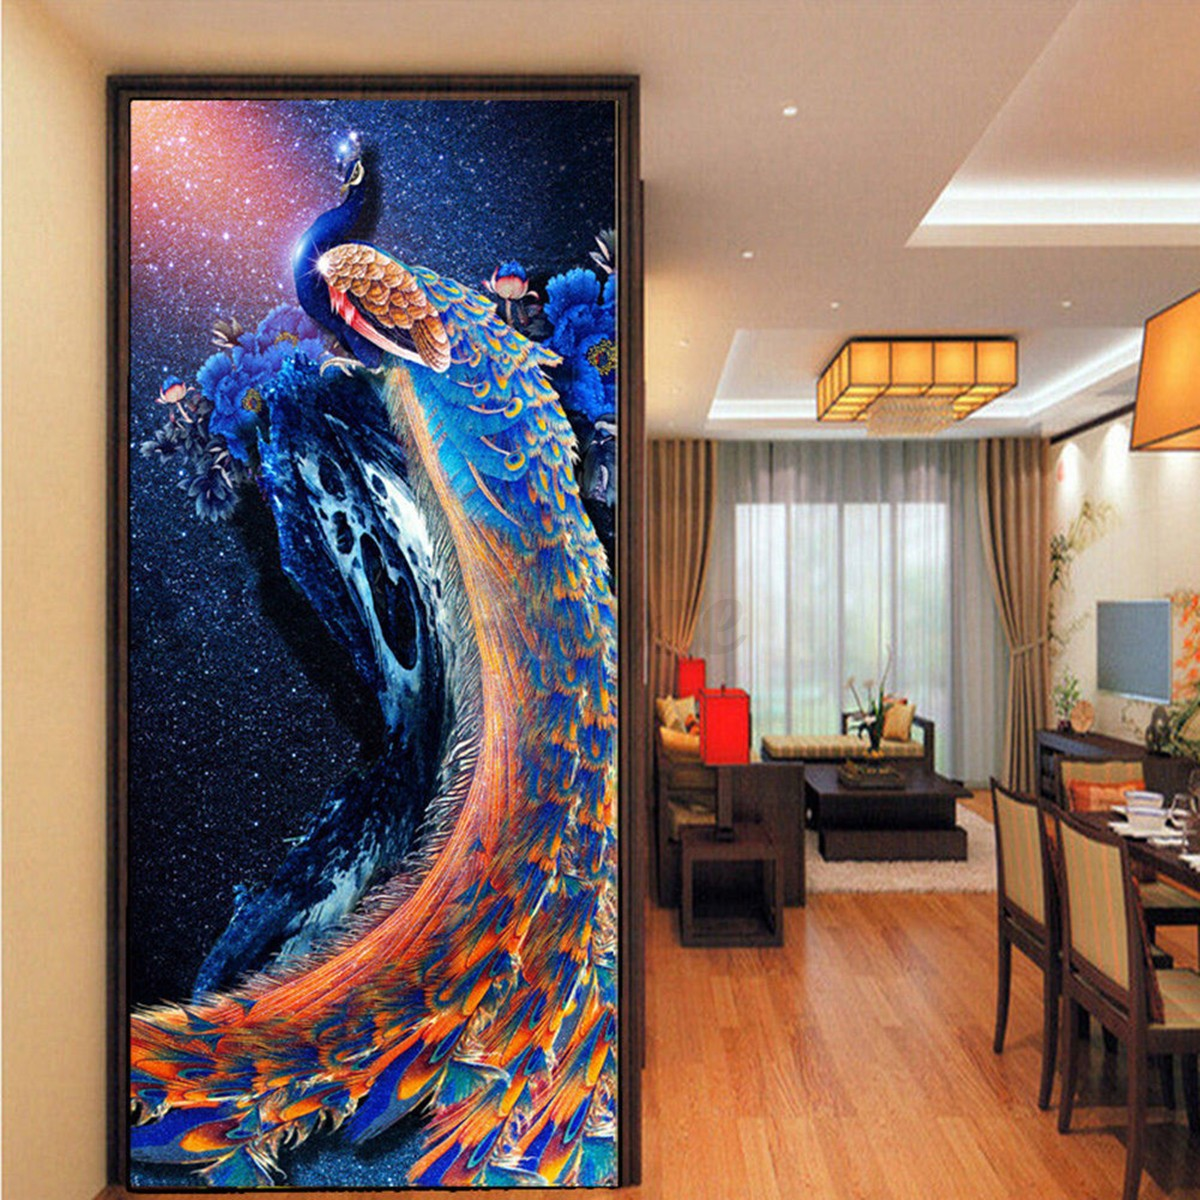 Home Decor Paintings Diy 5d Diamond Painting Embroidery Cross Crafts Stitch